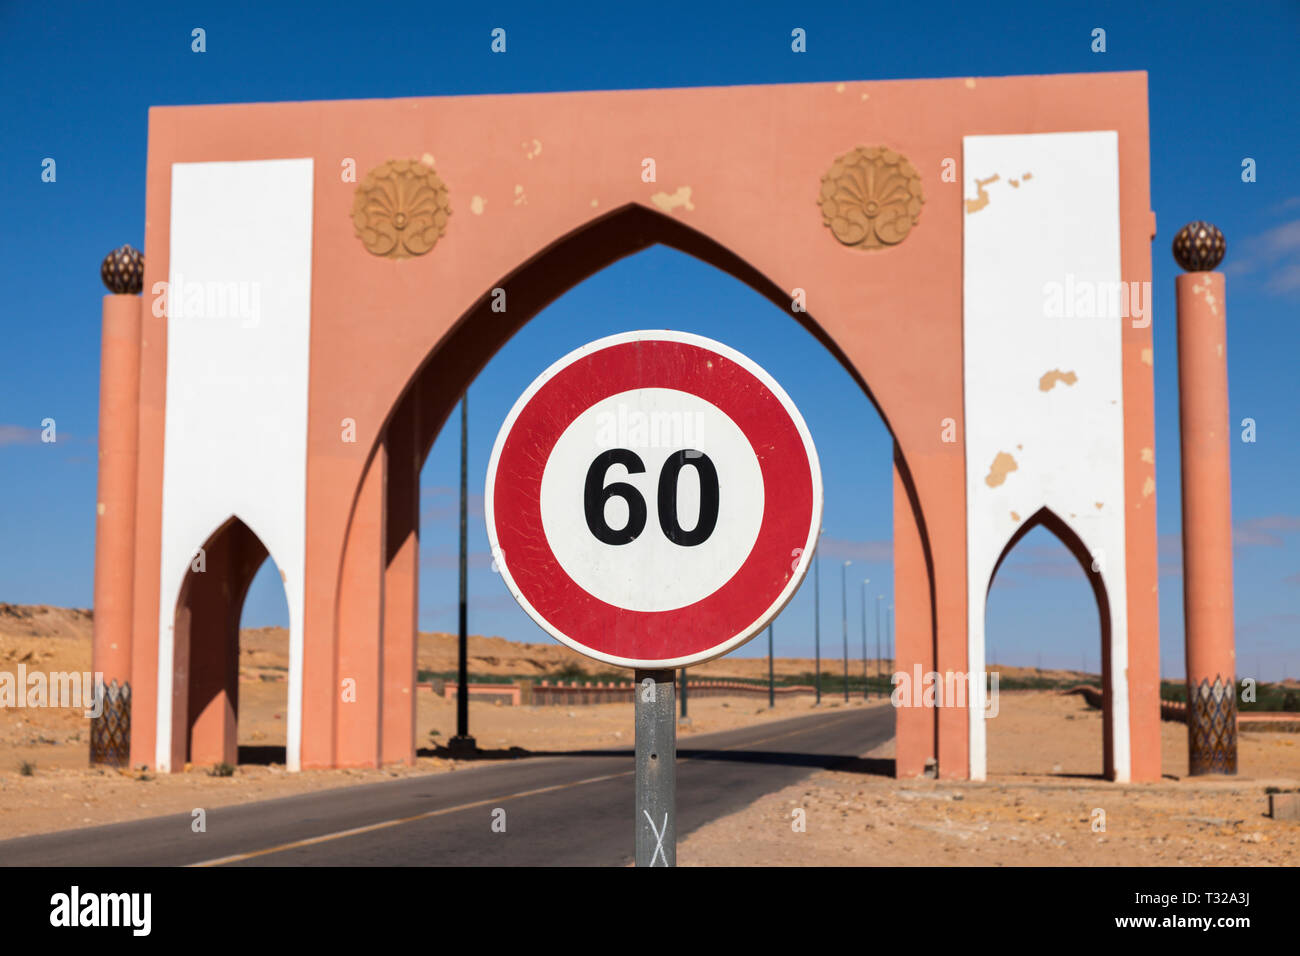 Laayoune city gate. Laayoune, Western Sahara, Morocco. Stock Photo